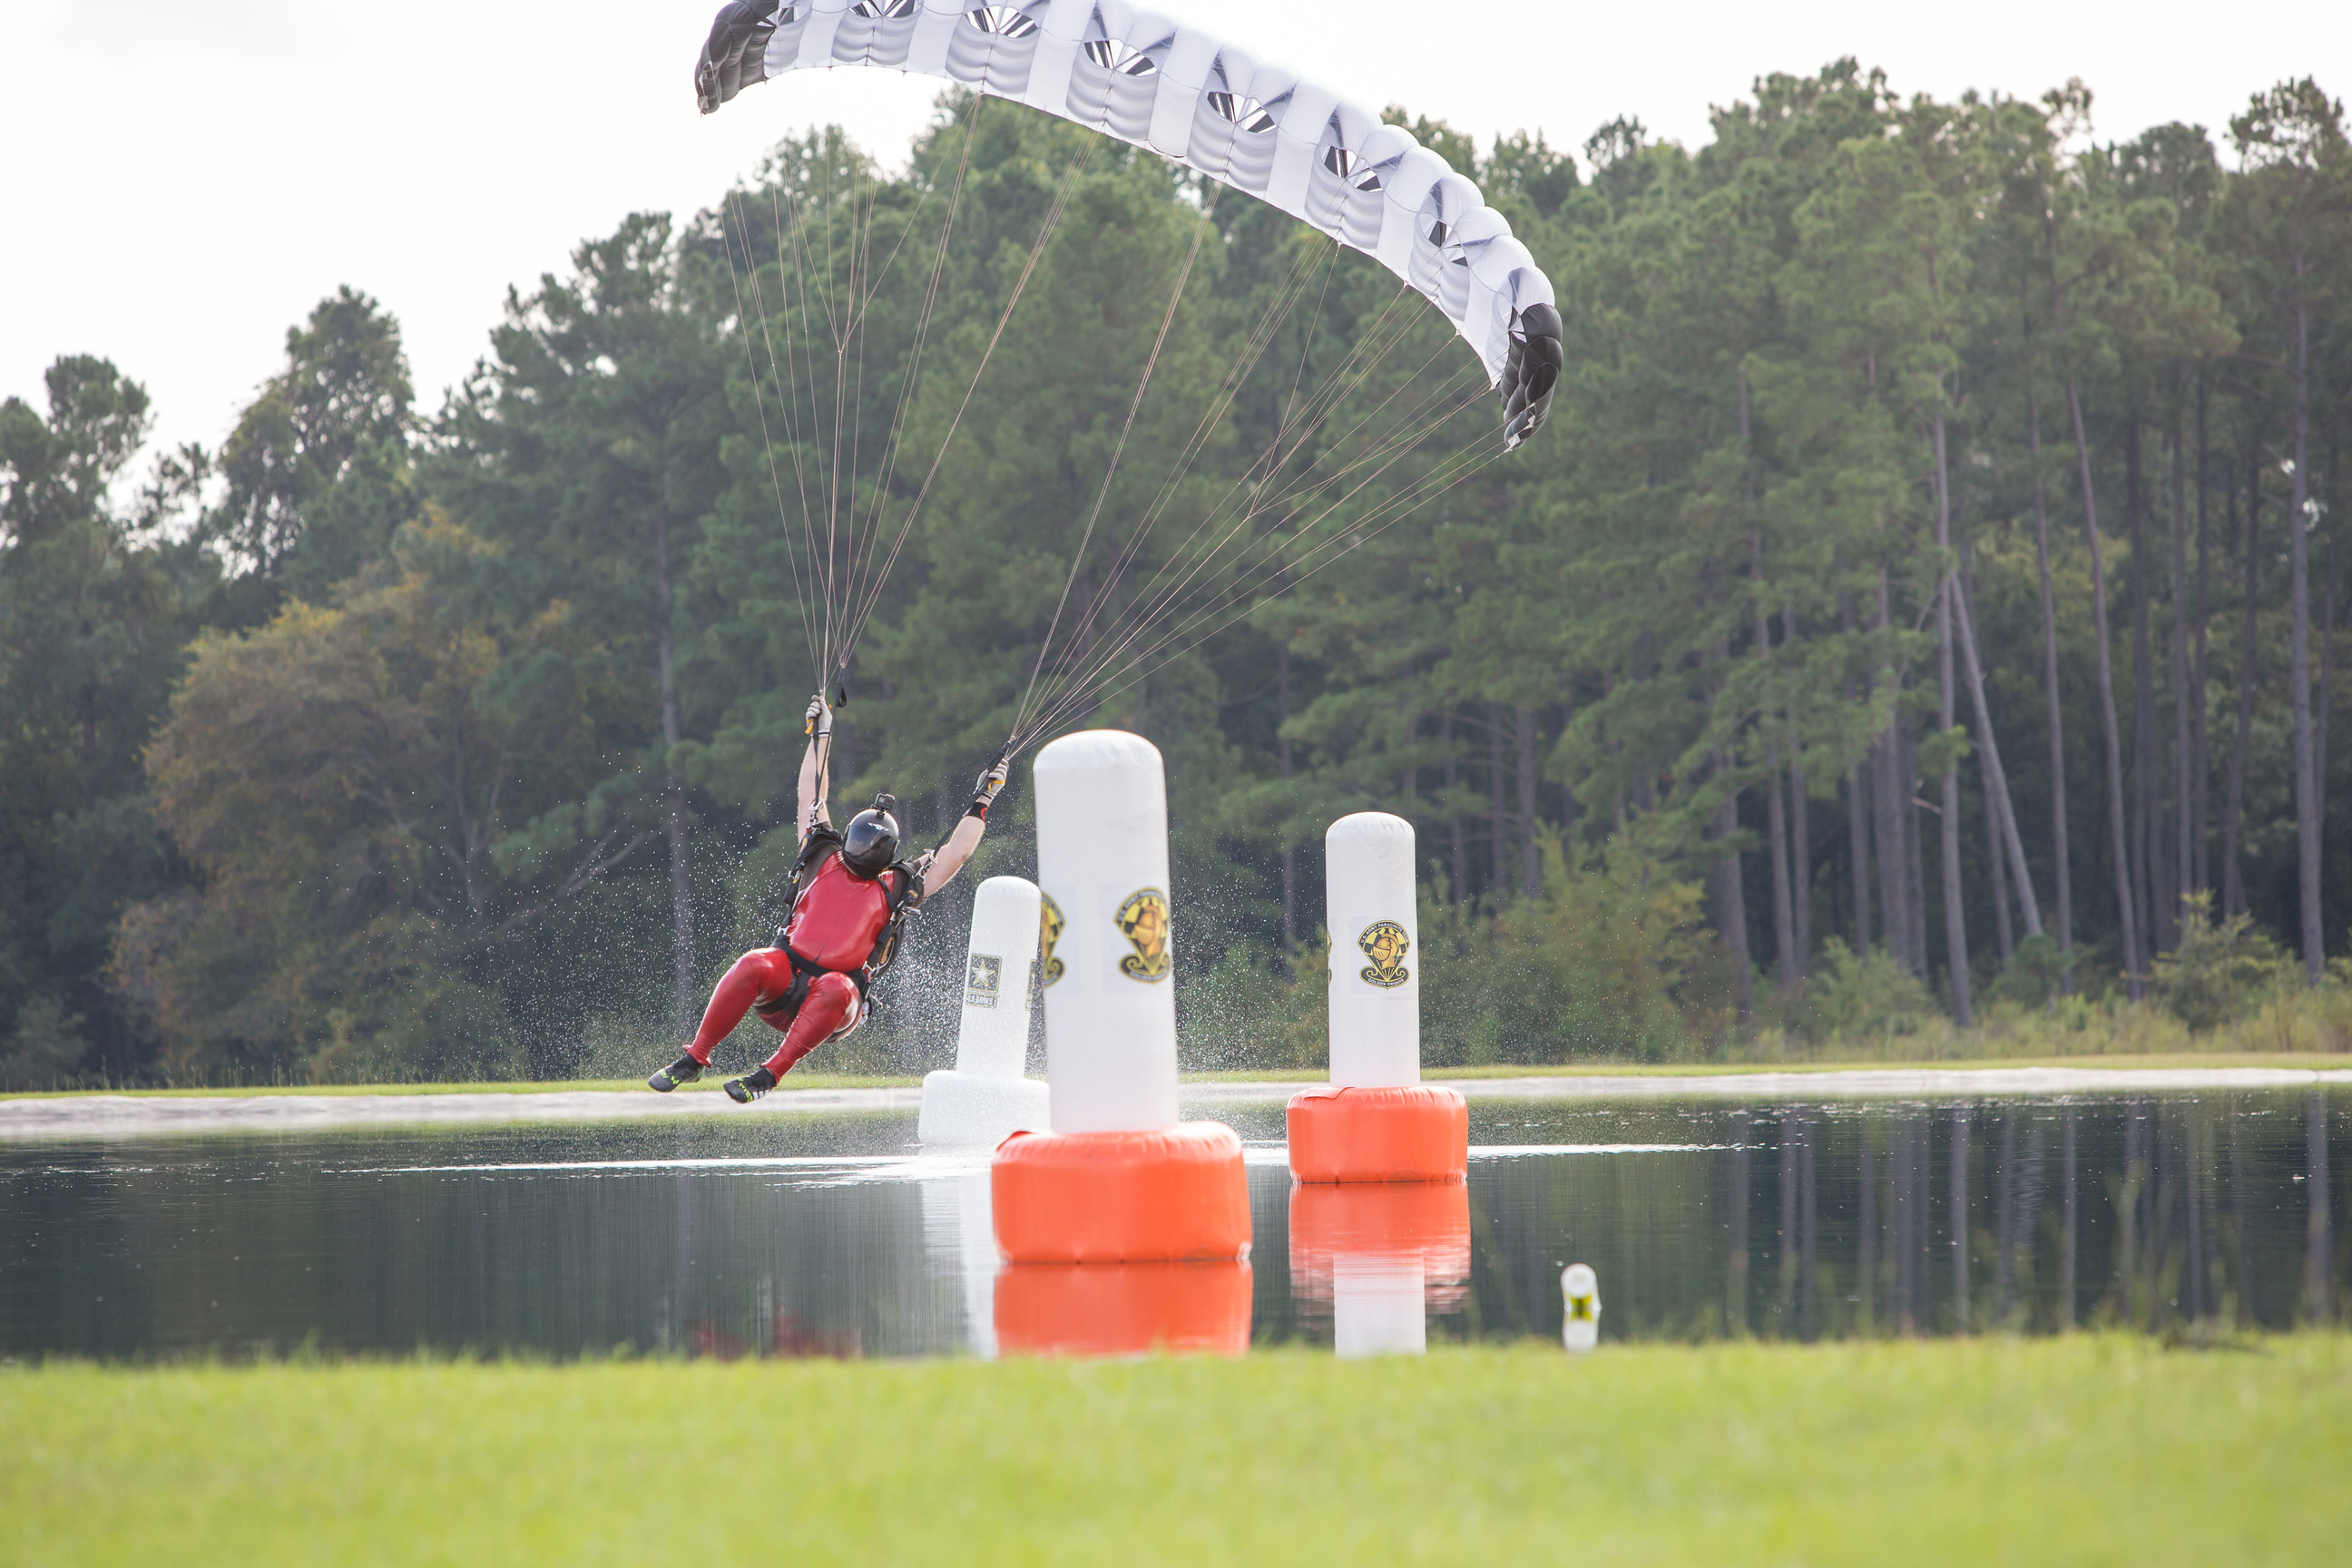 Greg Windmiller swooping in his slick red swoop at the US Nationals of Canopy Piloting.